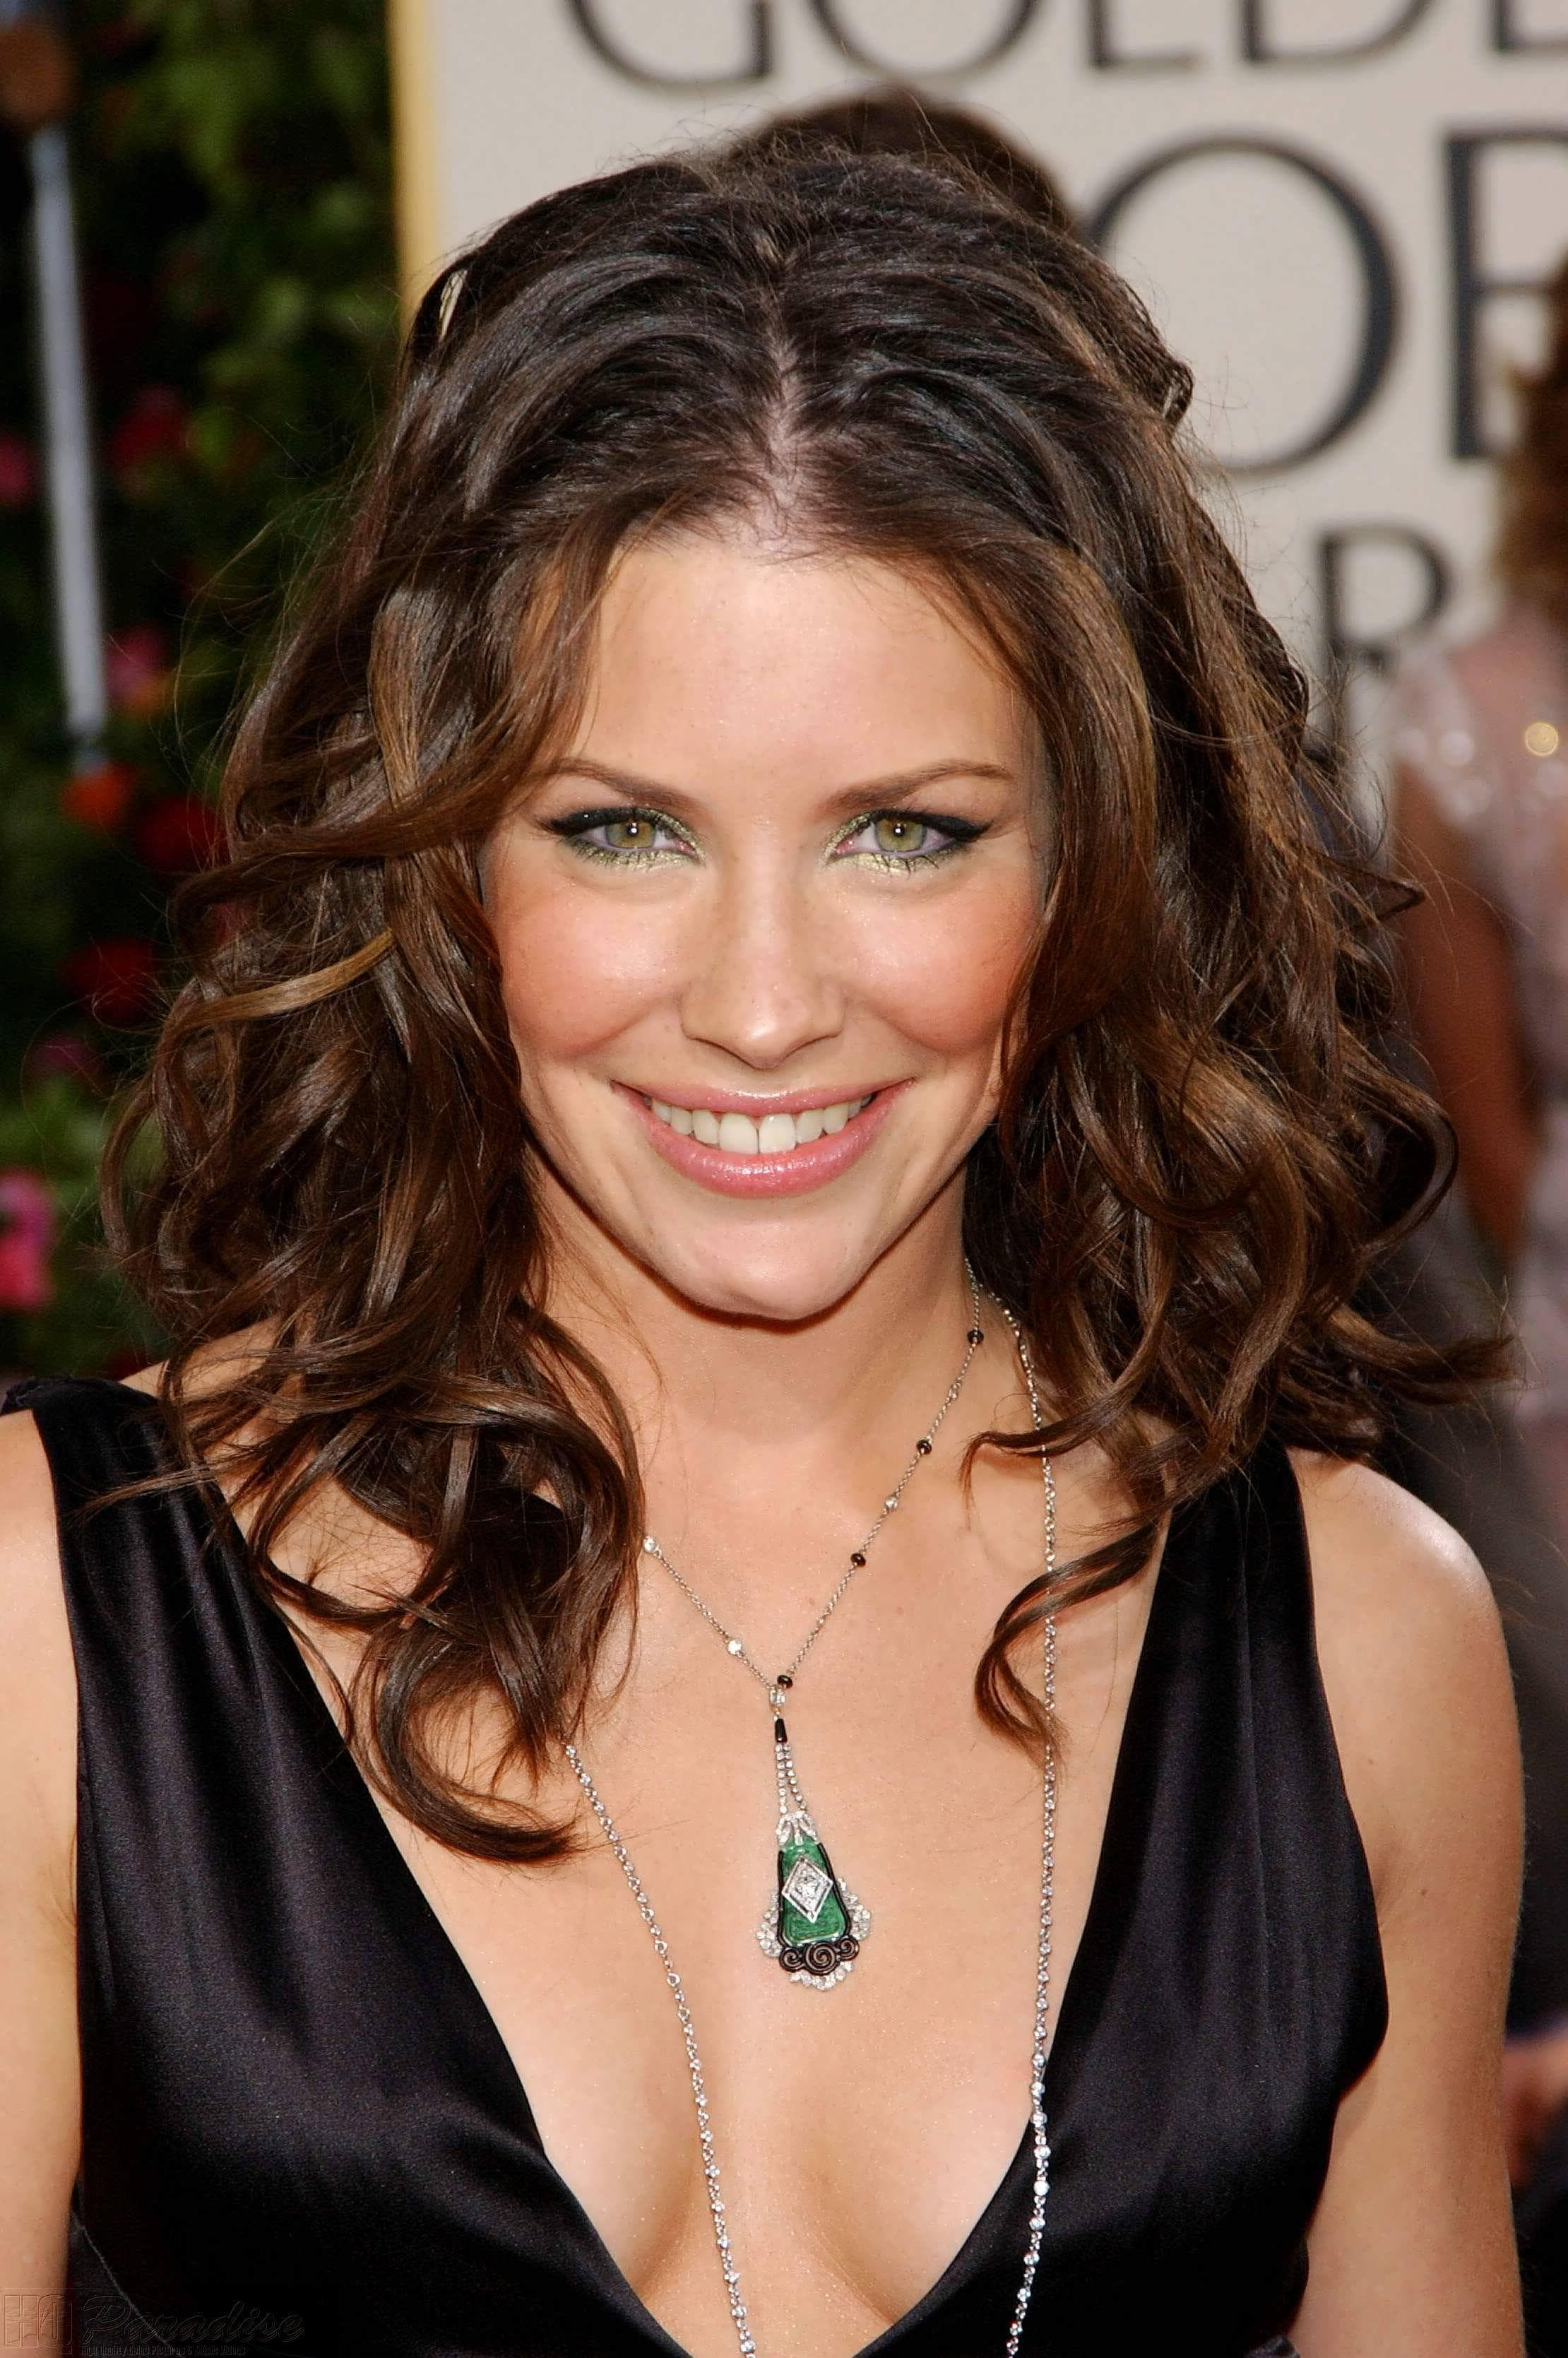 Evangeline Lilly HQ wallpapers